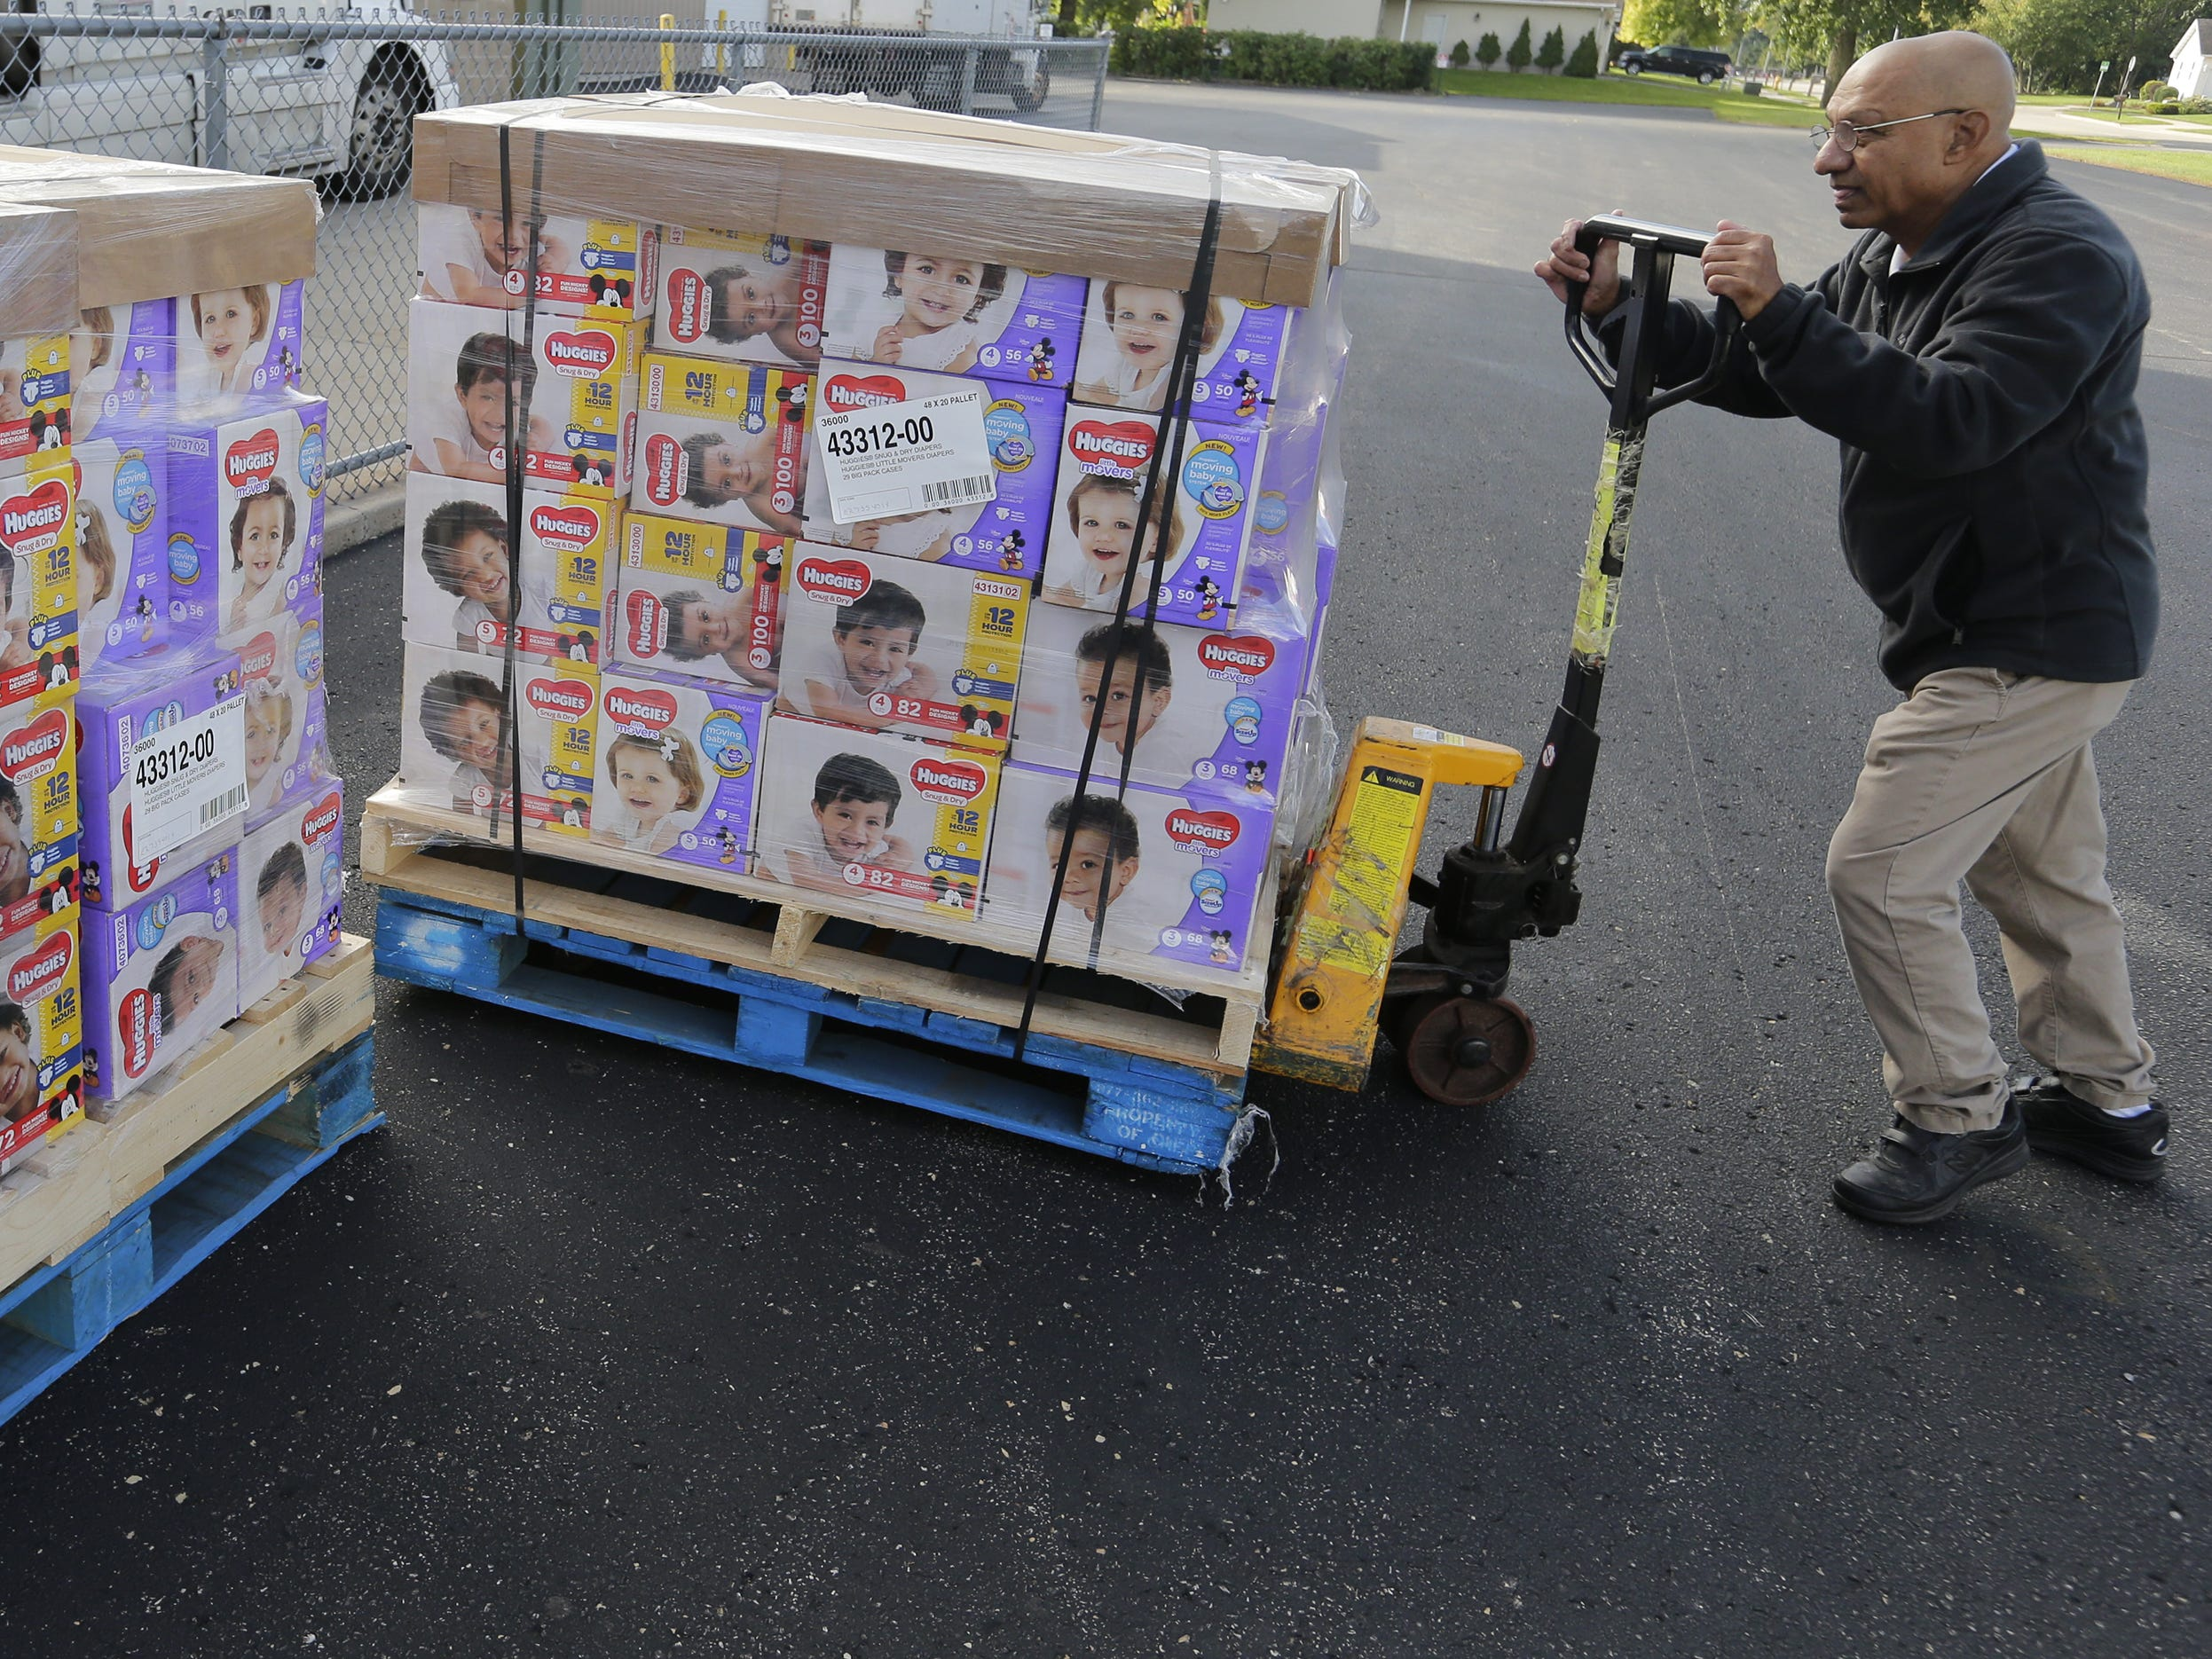 Hussain Sattar of Father Carr's Food Pantry helps position the pallets of diapers to be distributed. The Oshkosh Area Community Food Pantry gets a donation of 50 pallets with 100,400 diapers on them from the USA TODAY NETWORK and Kimberly-Clark Corp. on Monday, Sept. 24, 2018, in Oshkosh. The diapers will go to nine food pantries in the area.